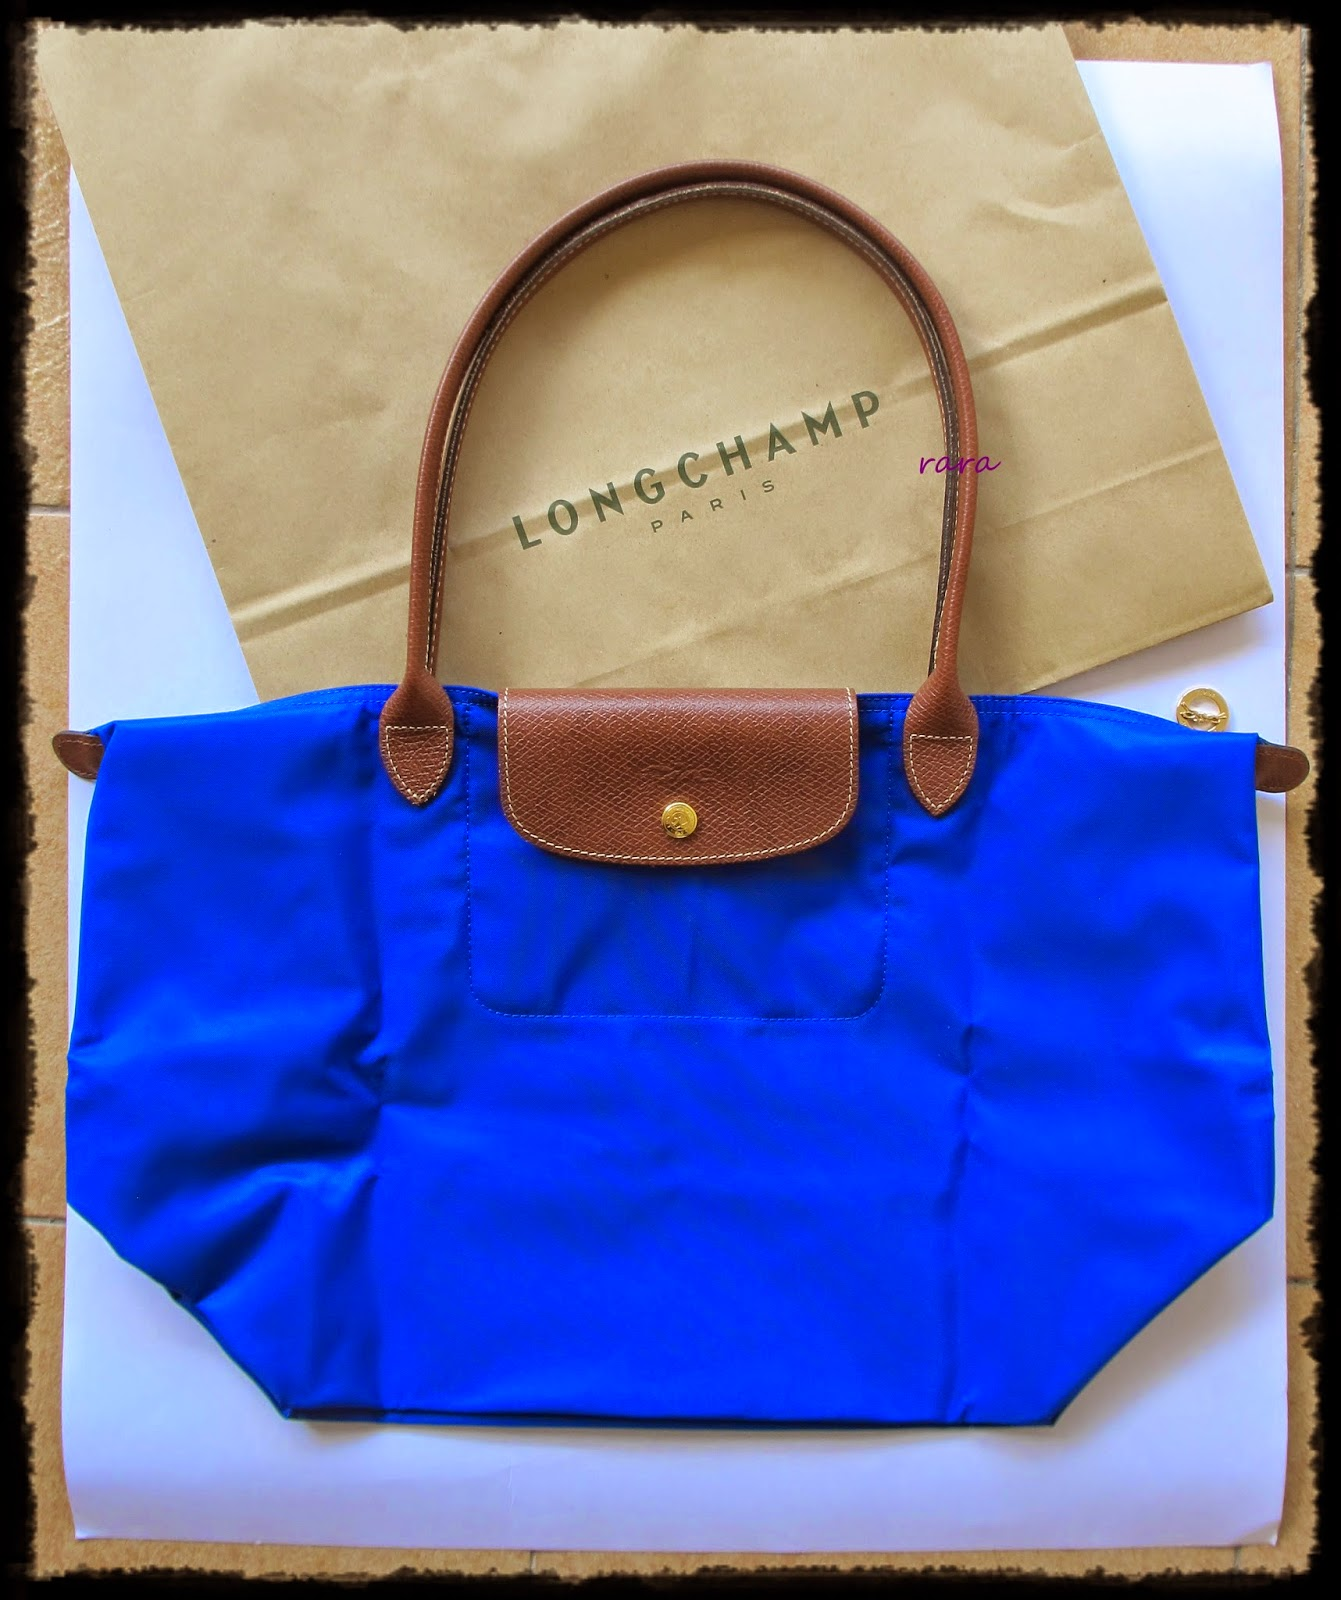 Longchamp Bag Le Pliage Colours : Never pay retail love longchamp le pliage tote bag